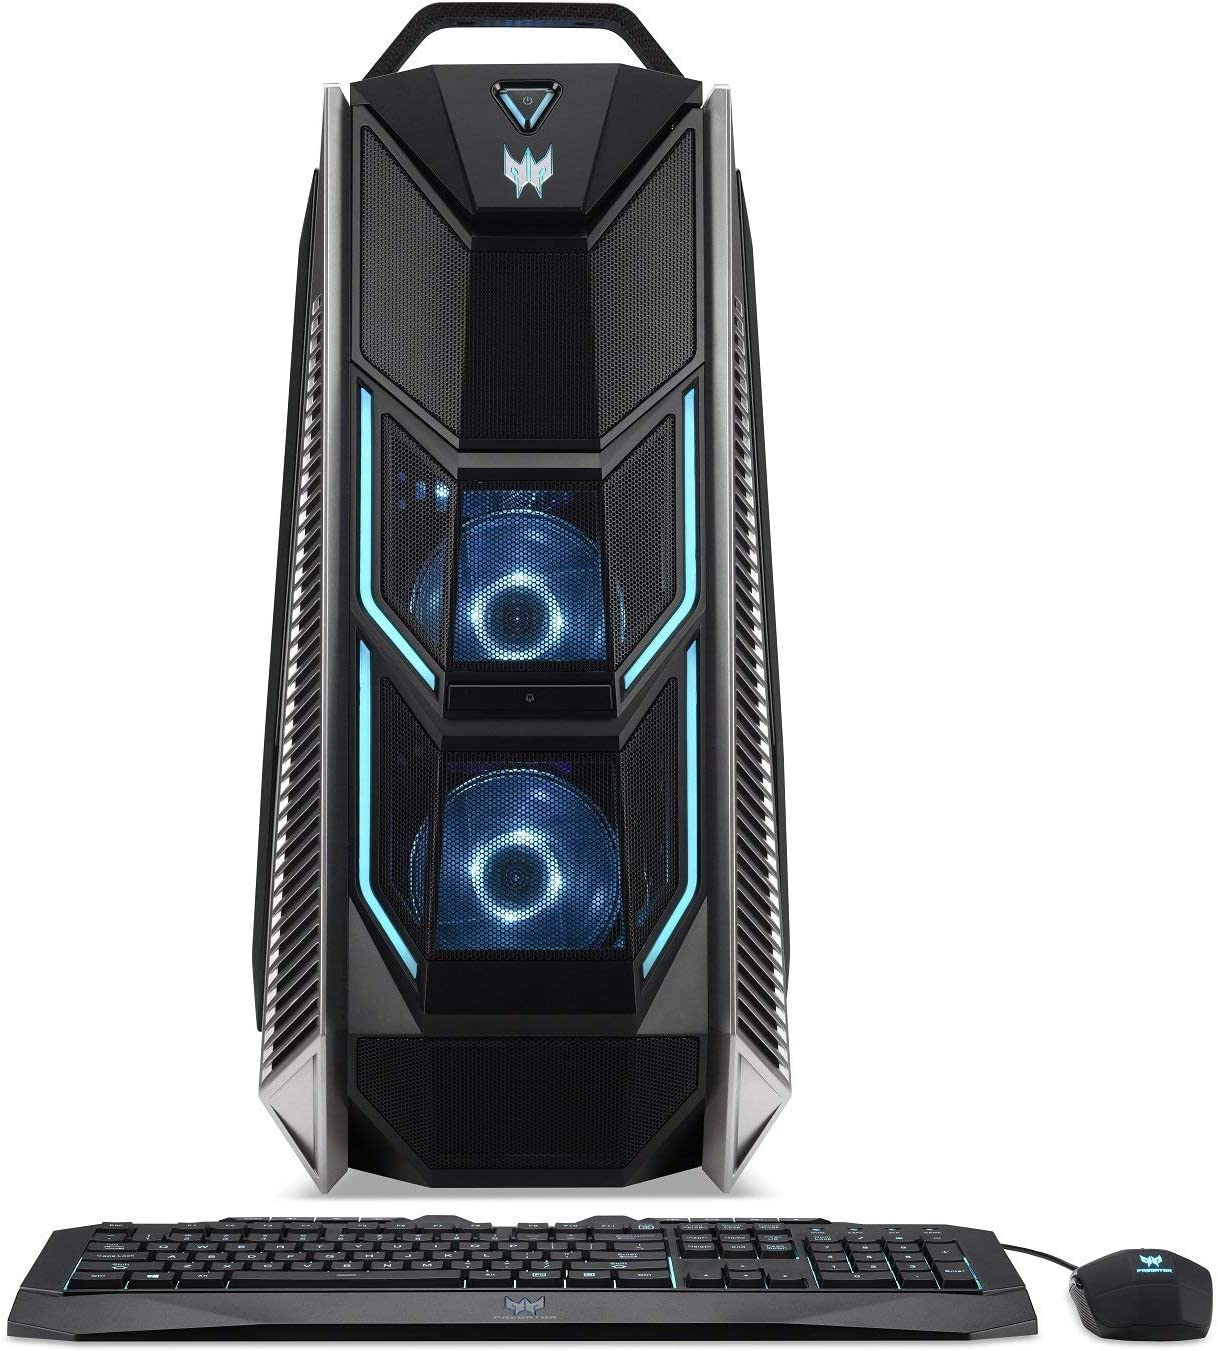 Acer Predator Orion 9000 Desktop, Intel i7-8700K 6-Core (Up to 4.7 GHz), NVIDIA Geforce RTX 2080 Ti 11GB, 32GB DDR4 RAM, 256GB PCIe NVMe SSD, 2TB HDD, Ice Tunnel Cooling, Win 10, PO9-600-8700K2080Ti